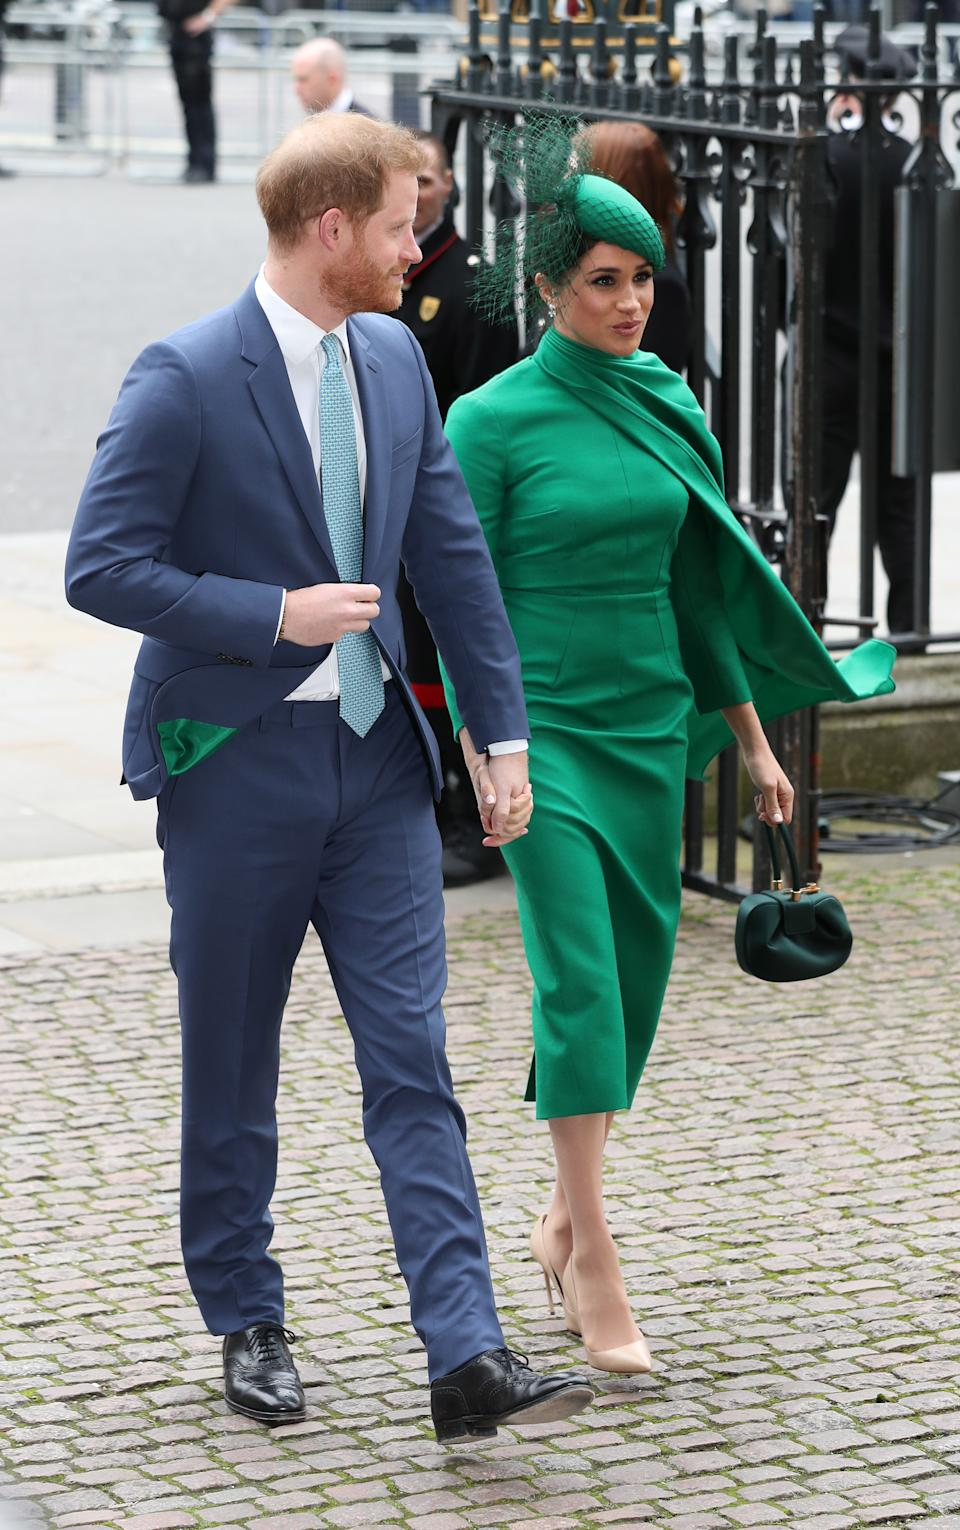 The Duke and Duchess of Sussex arrive at the Commonwealth Service at Westminster Abbey, London on Commonwealth Day. The service is the Duke and Duchess of Sussex's final official engagement before they quit royal life.